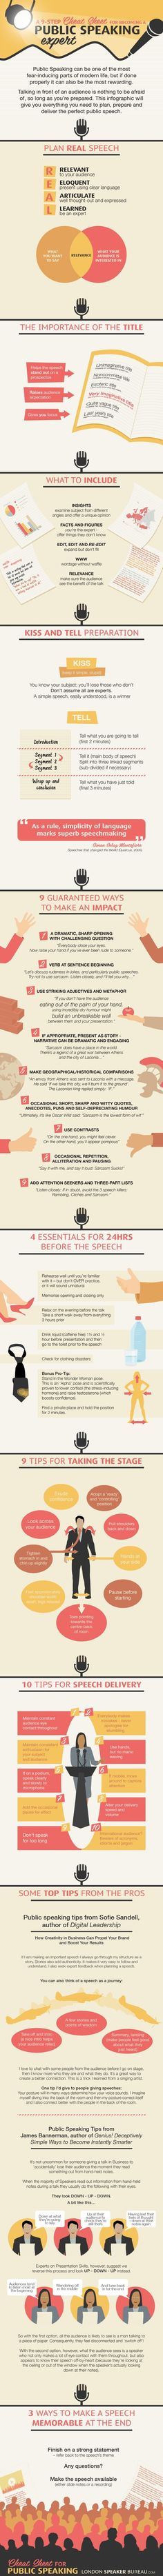 Take a look at this infographic on public speaking to learn how to become an expert in no time.